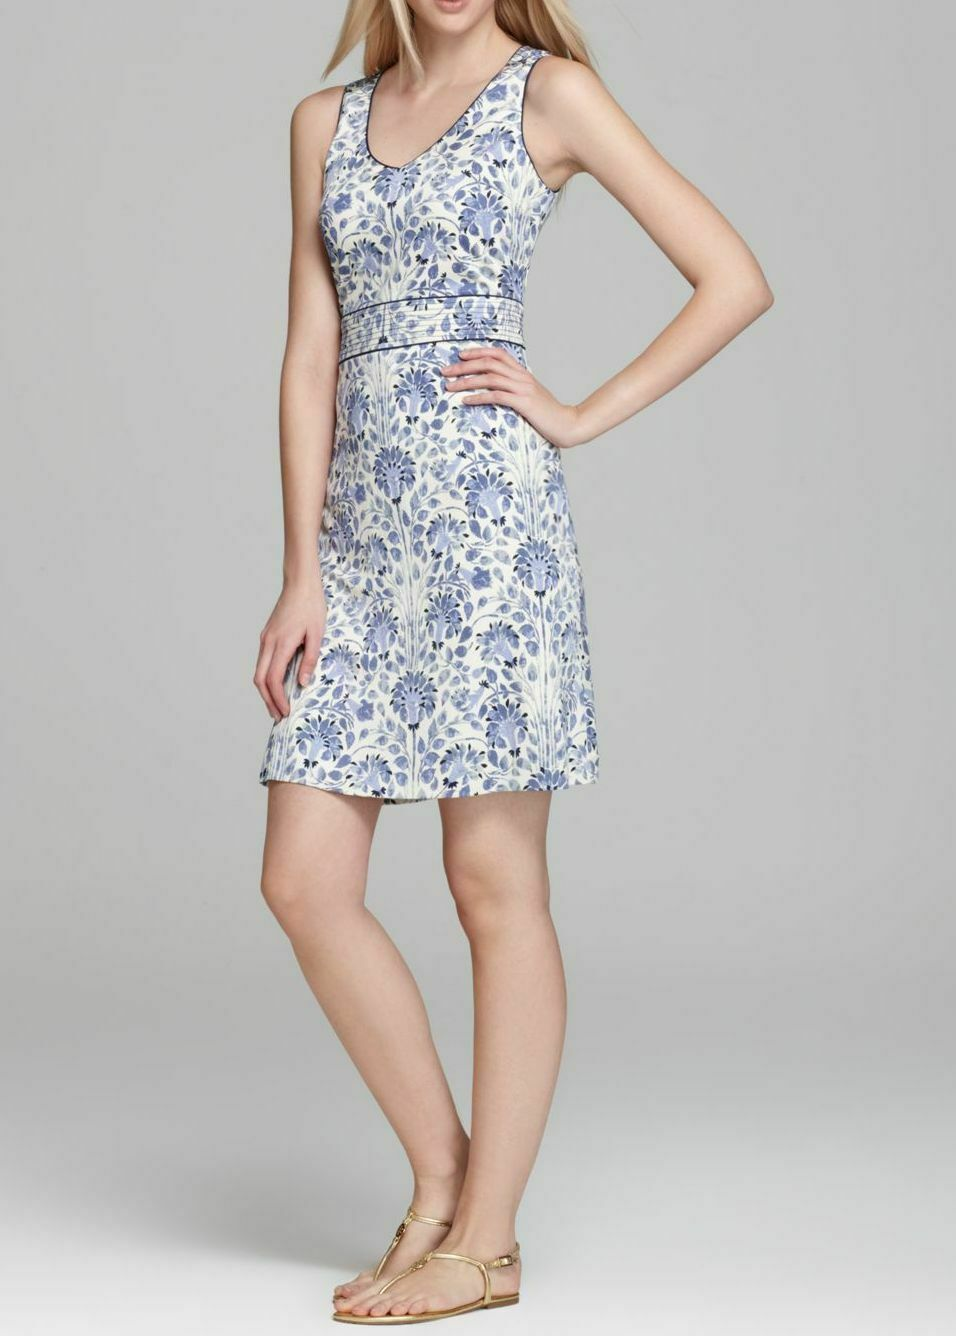 TORY BURCH damen 'GENE' Blau FLORAL SILK JERSEY A-LINE DRESS -MEDIUM UK 12-